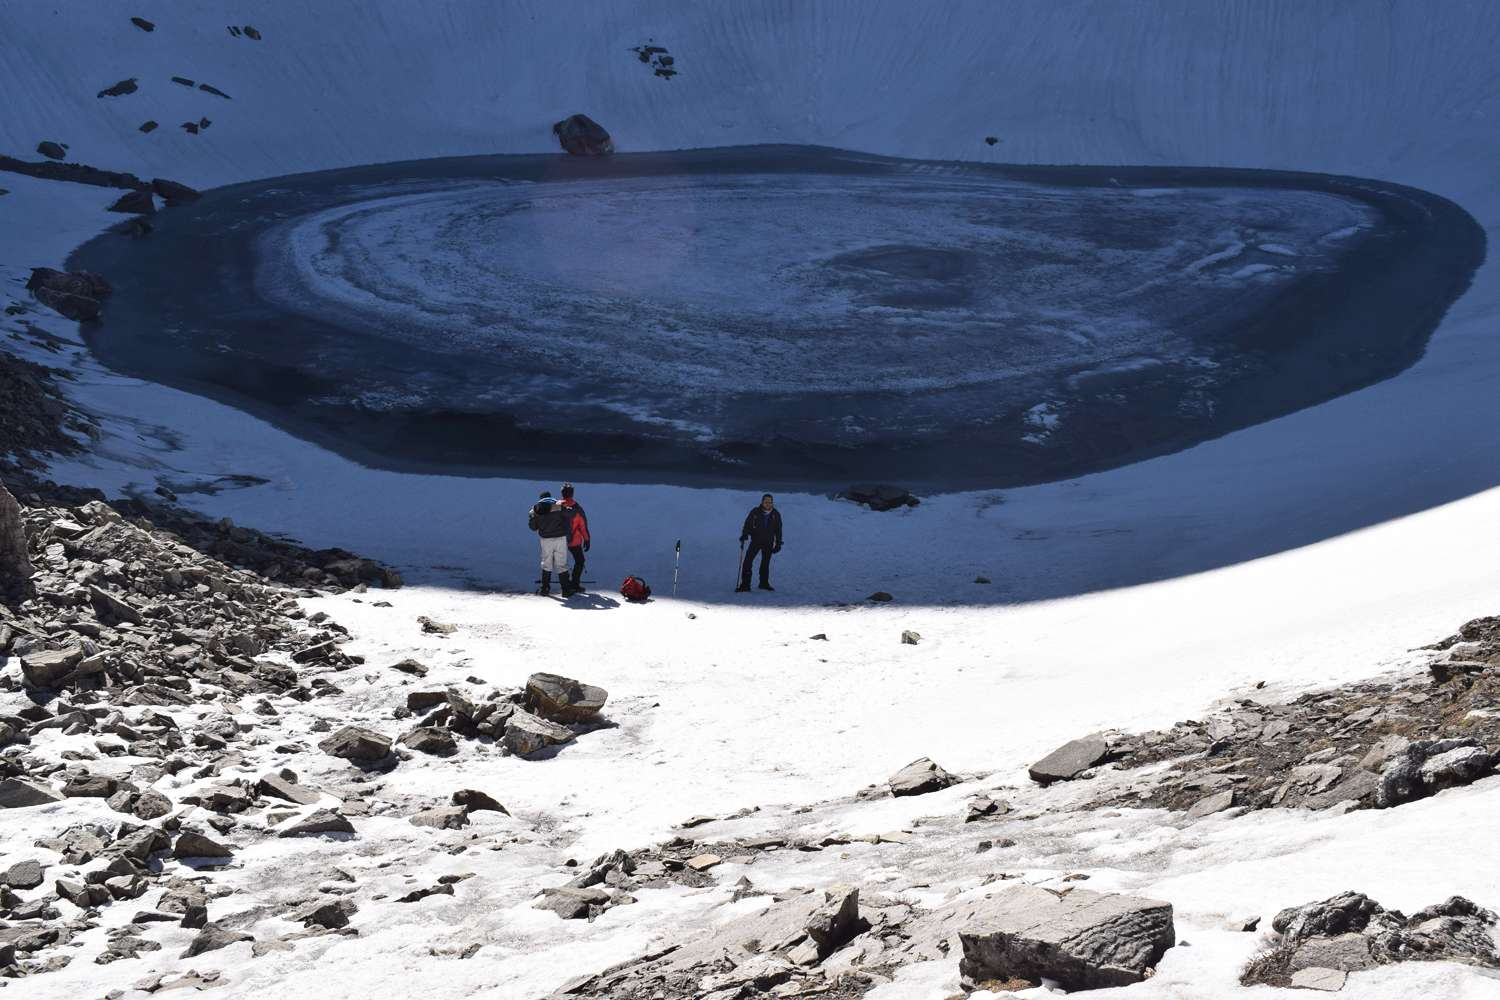 roopkund lake with white patch of snow in the middle